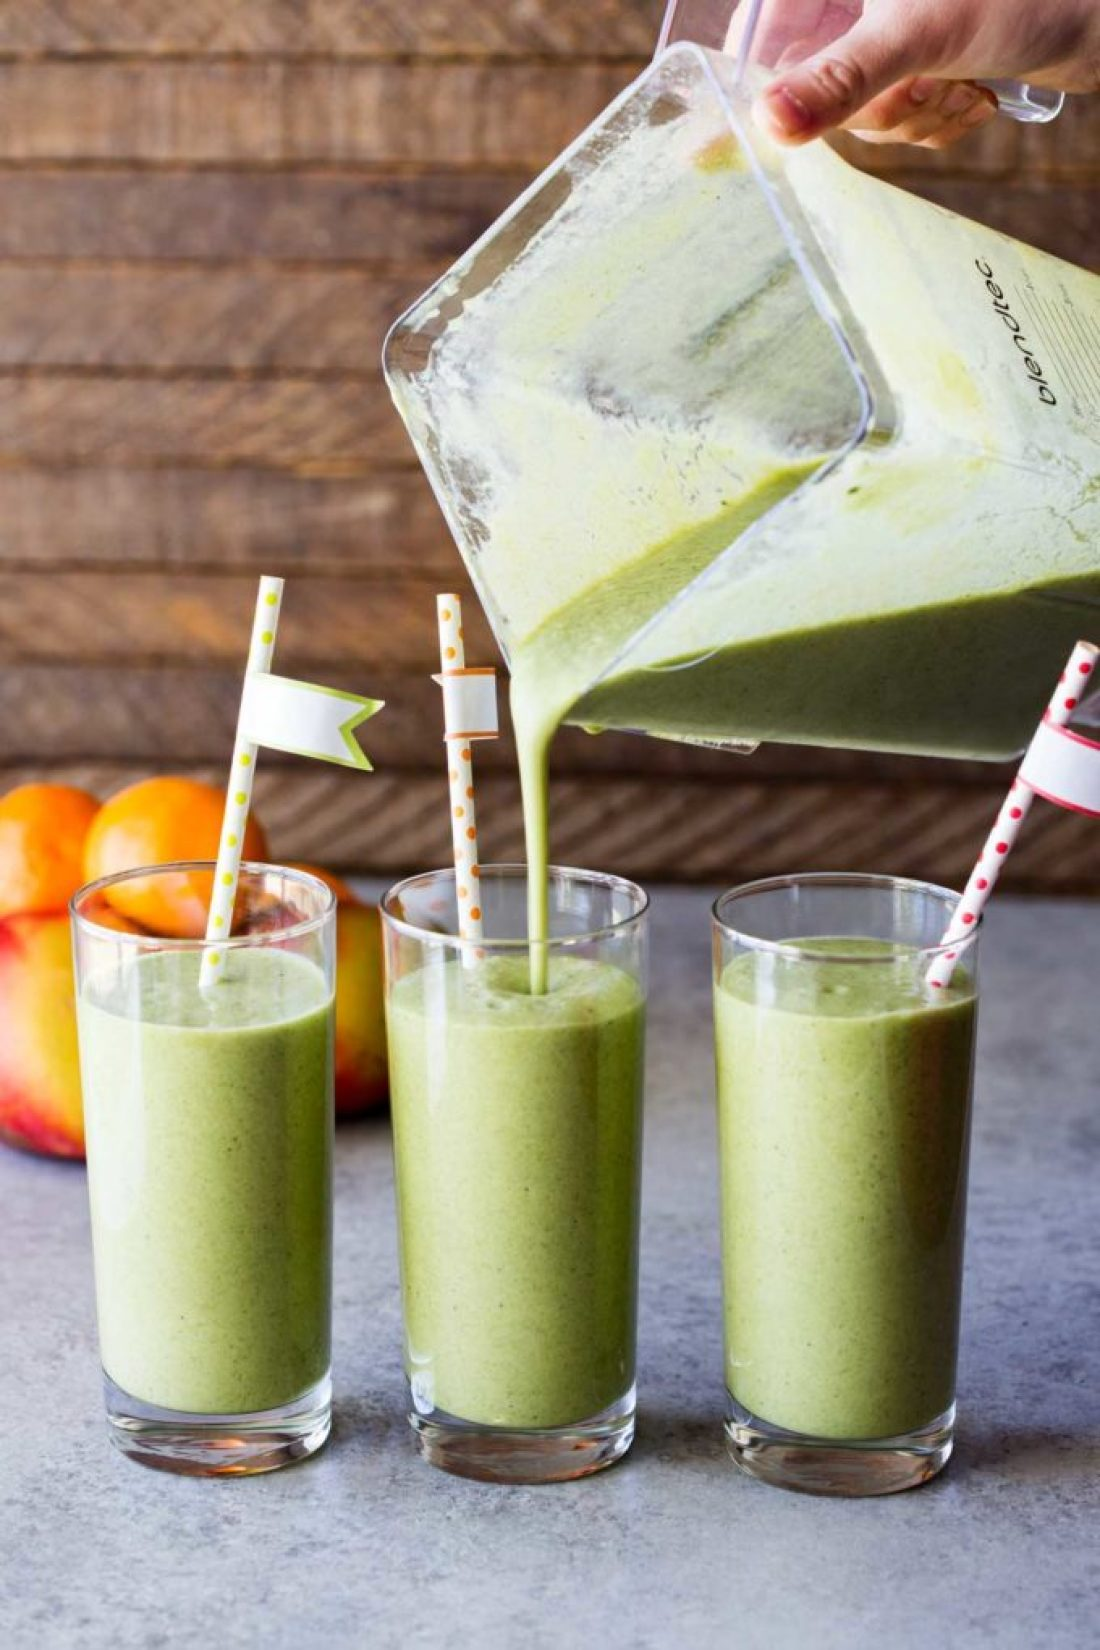 Pouring Collagen Beauty Greens, Green smoothie with mango